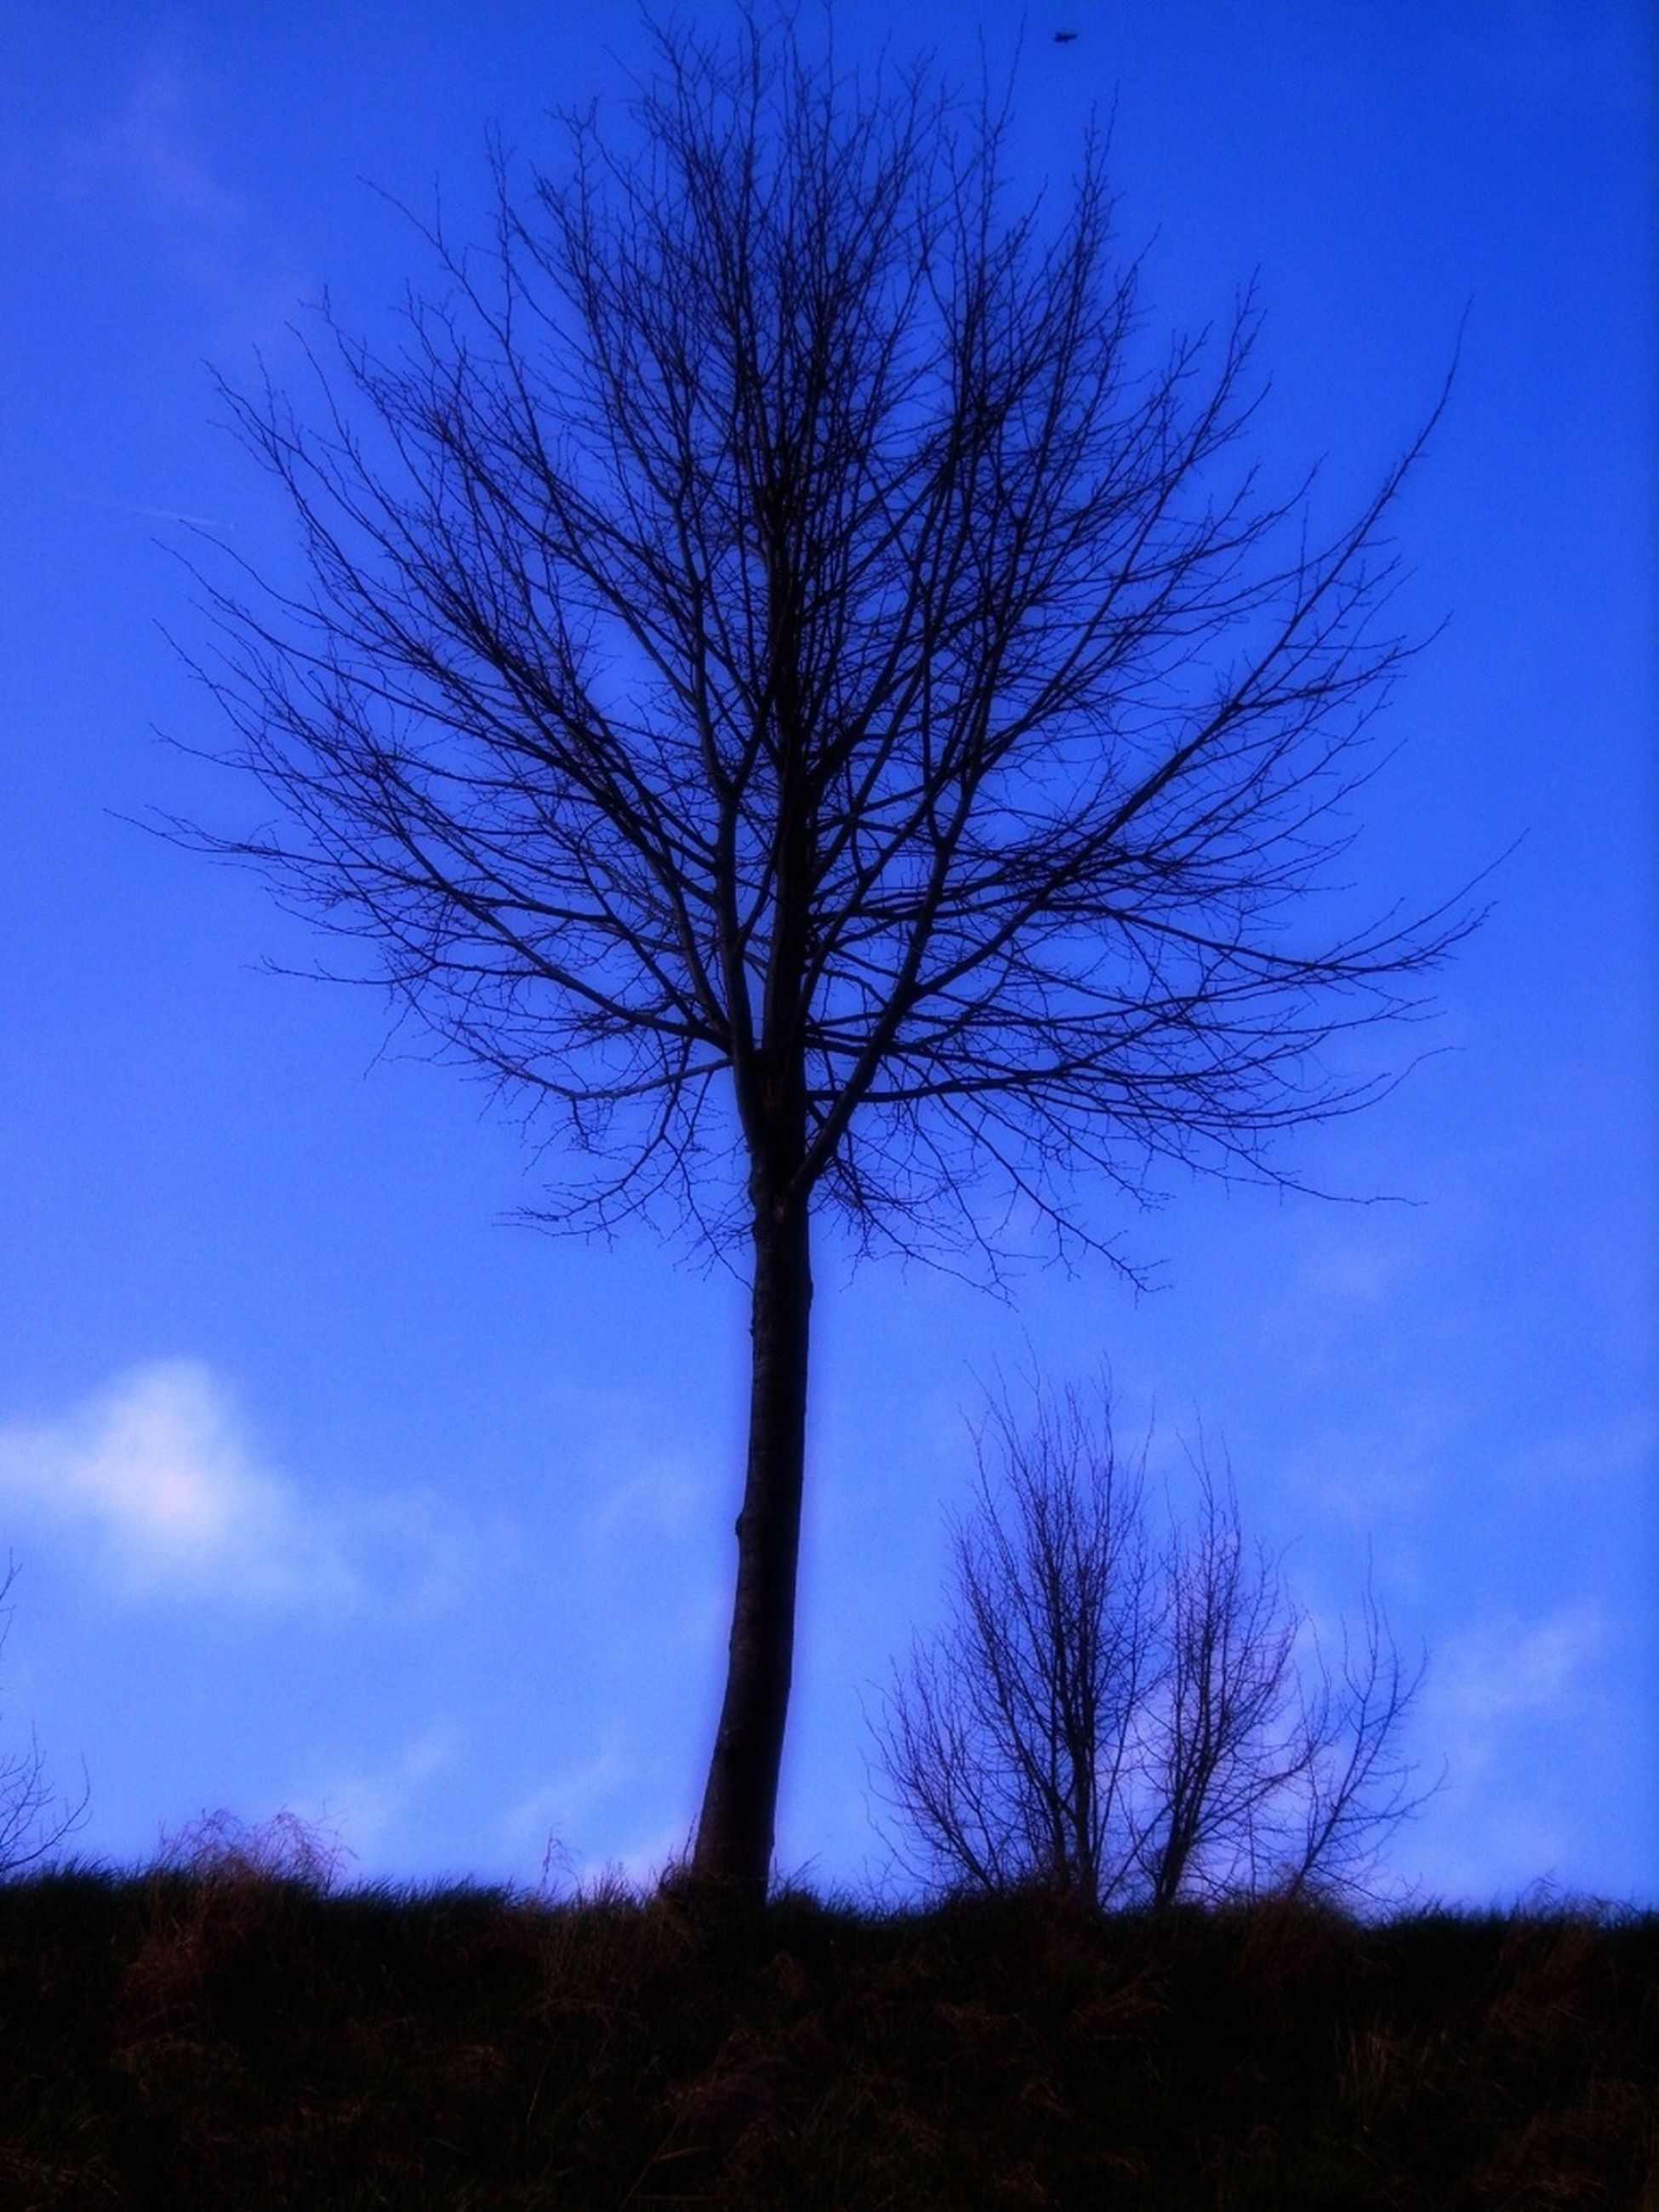 bare tree, tree, blue, branch, sky, tranquility, silhouette, low angle view, tree trunk, tranquil scene, nature, beauty in nature, scenics, growth, field, outdoors, landscape, no people, non-urban scene, dead plant